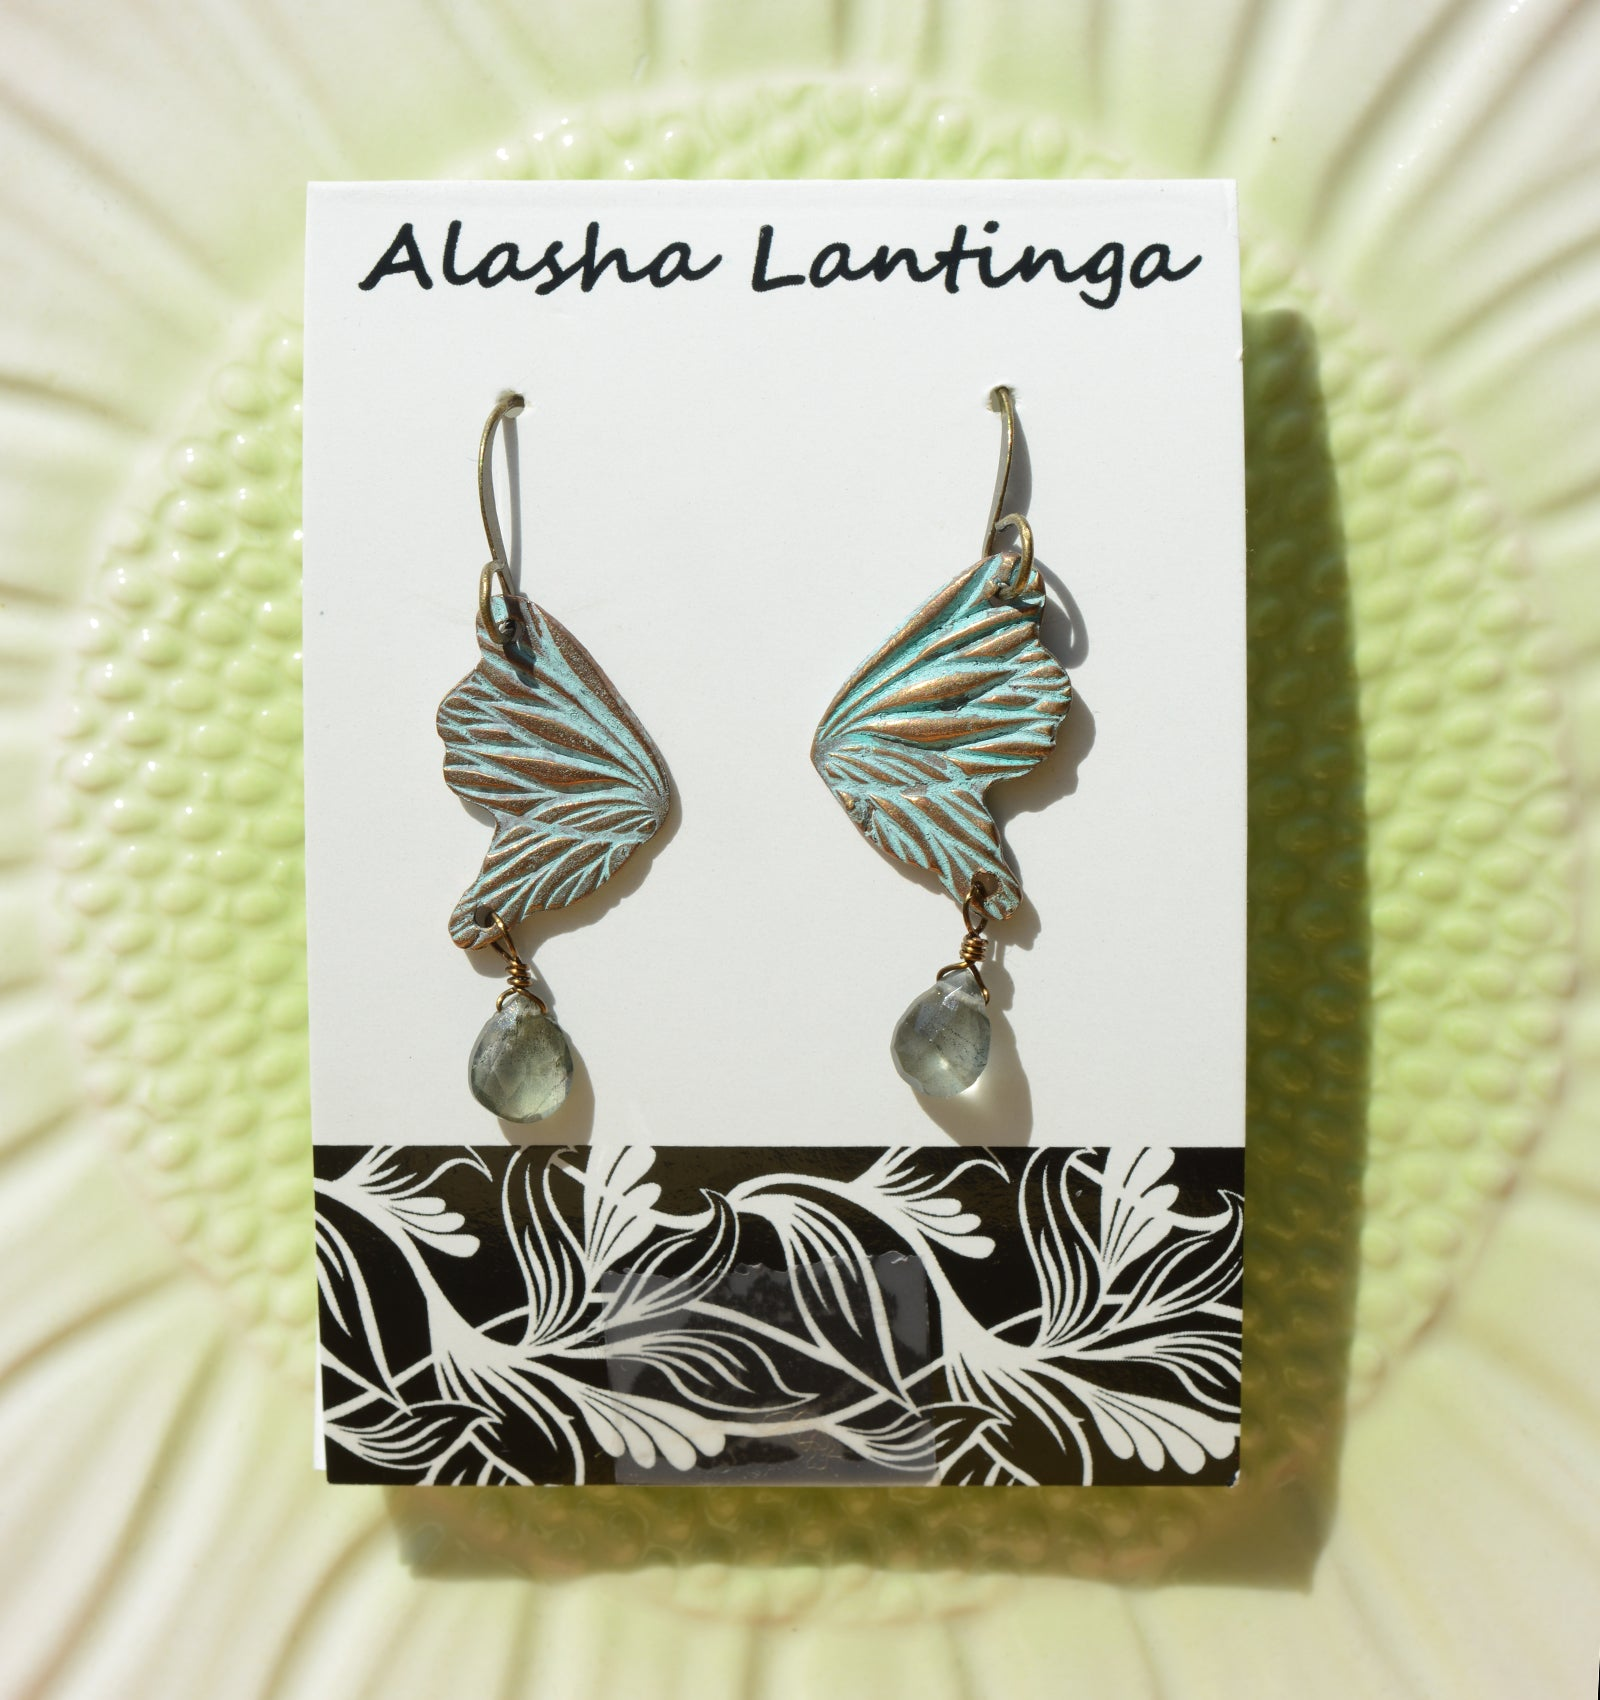 Alasha Lantinga {TURQUOISE PATINA EARRINGS}